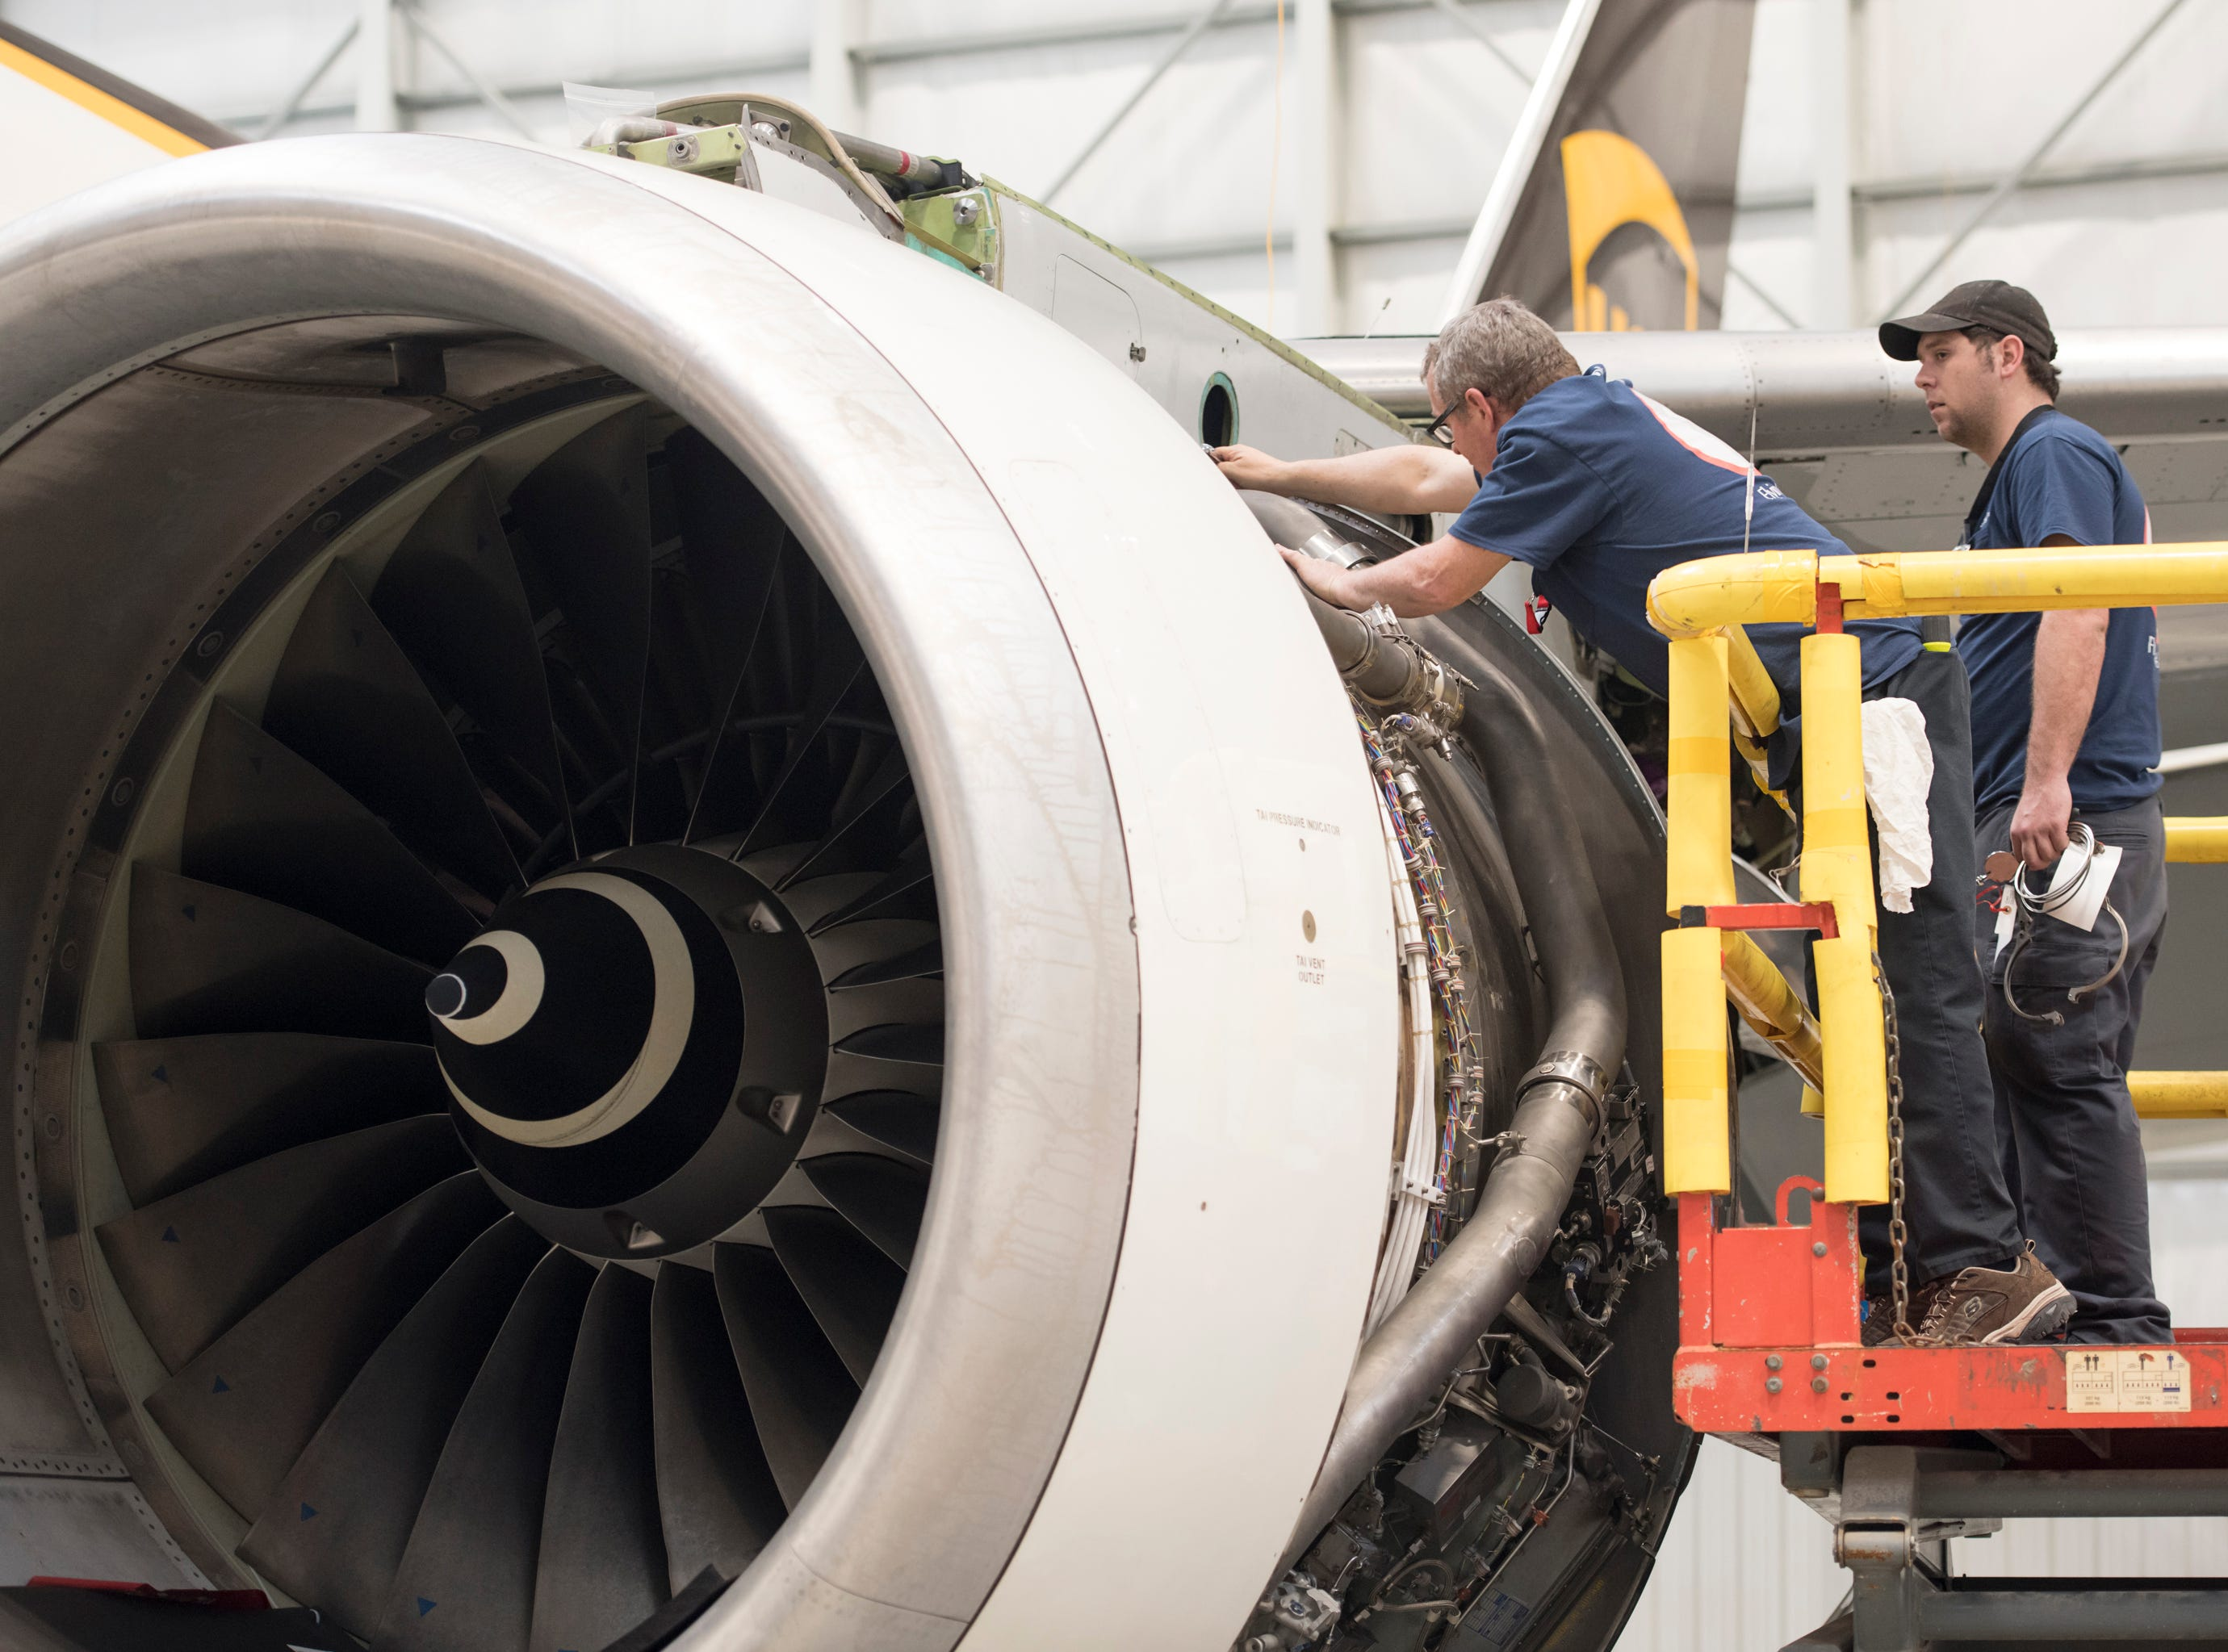 Mechanics Eric Matherly, left, and Justin Wilson work on a jet engine in the hangar at ST Engineering at the Pensacola International Airport in Pensacola on Friday, February 8, 2019.